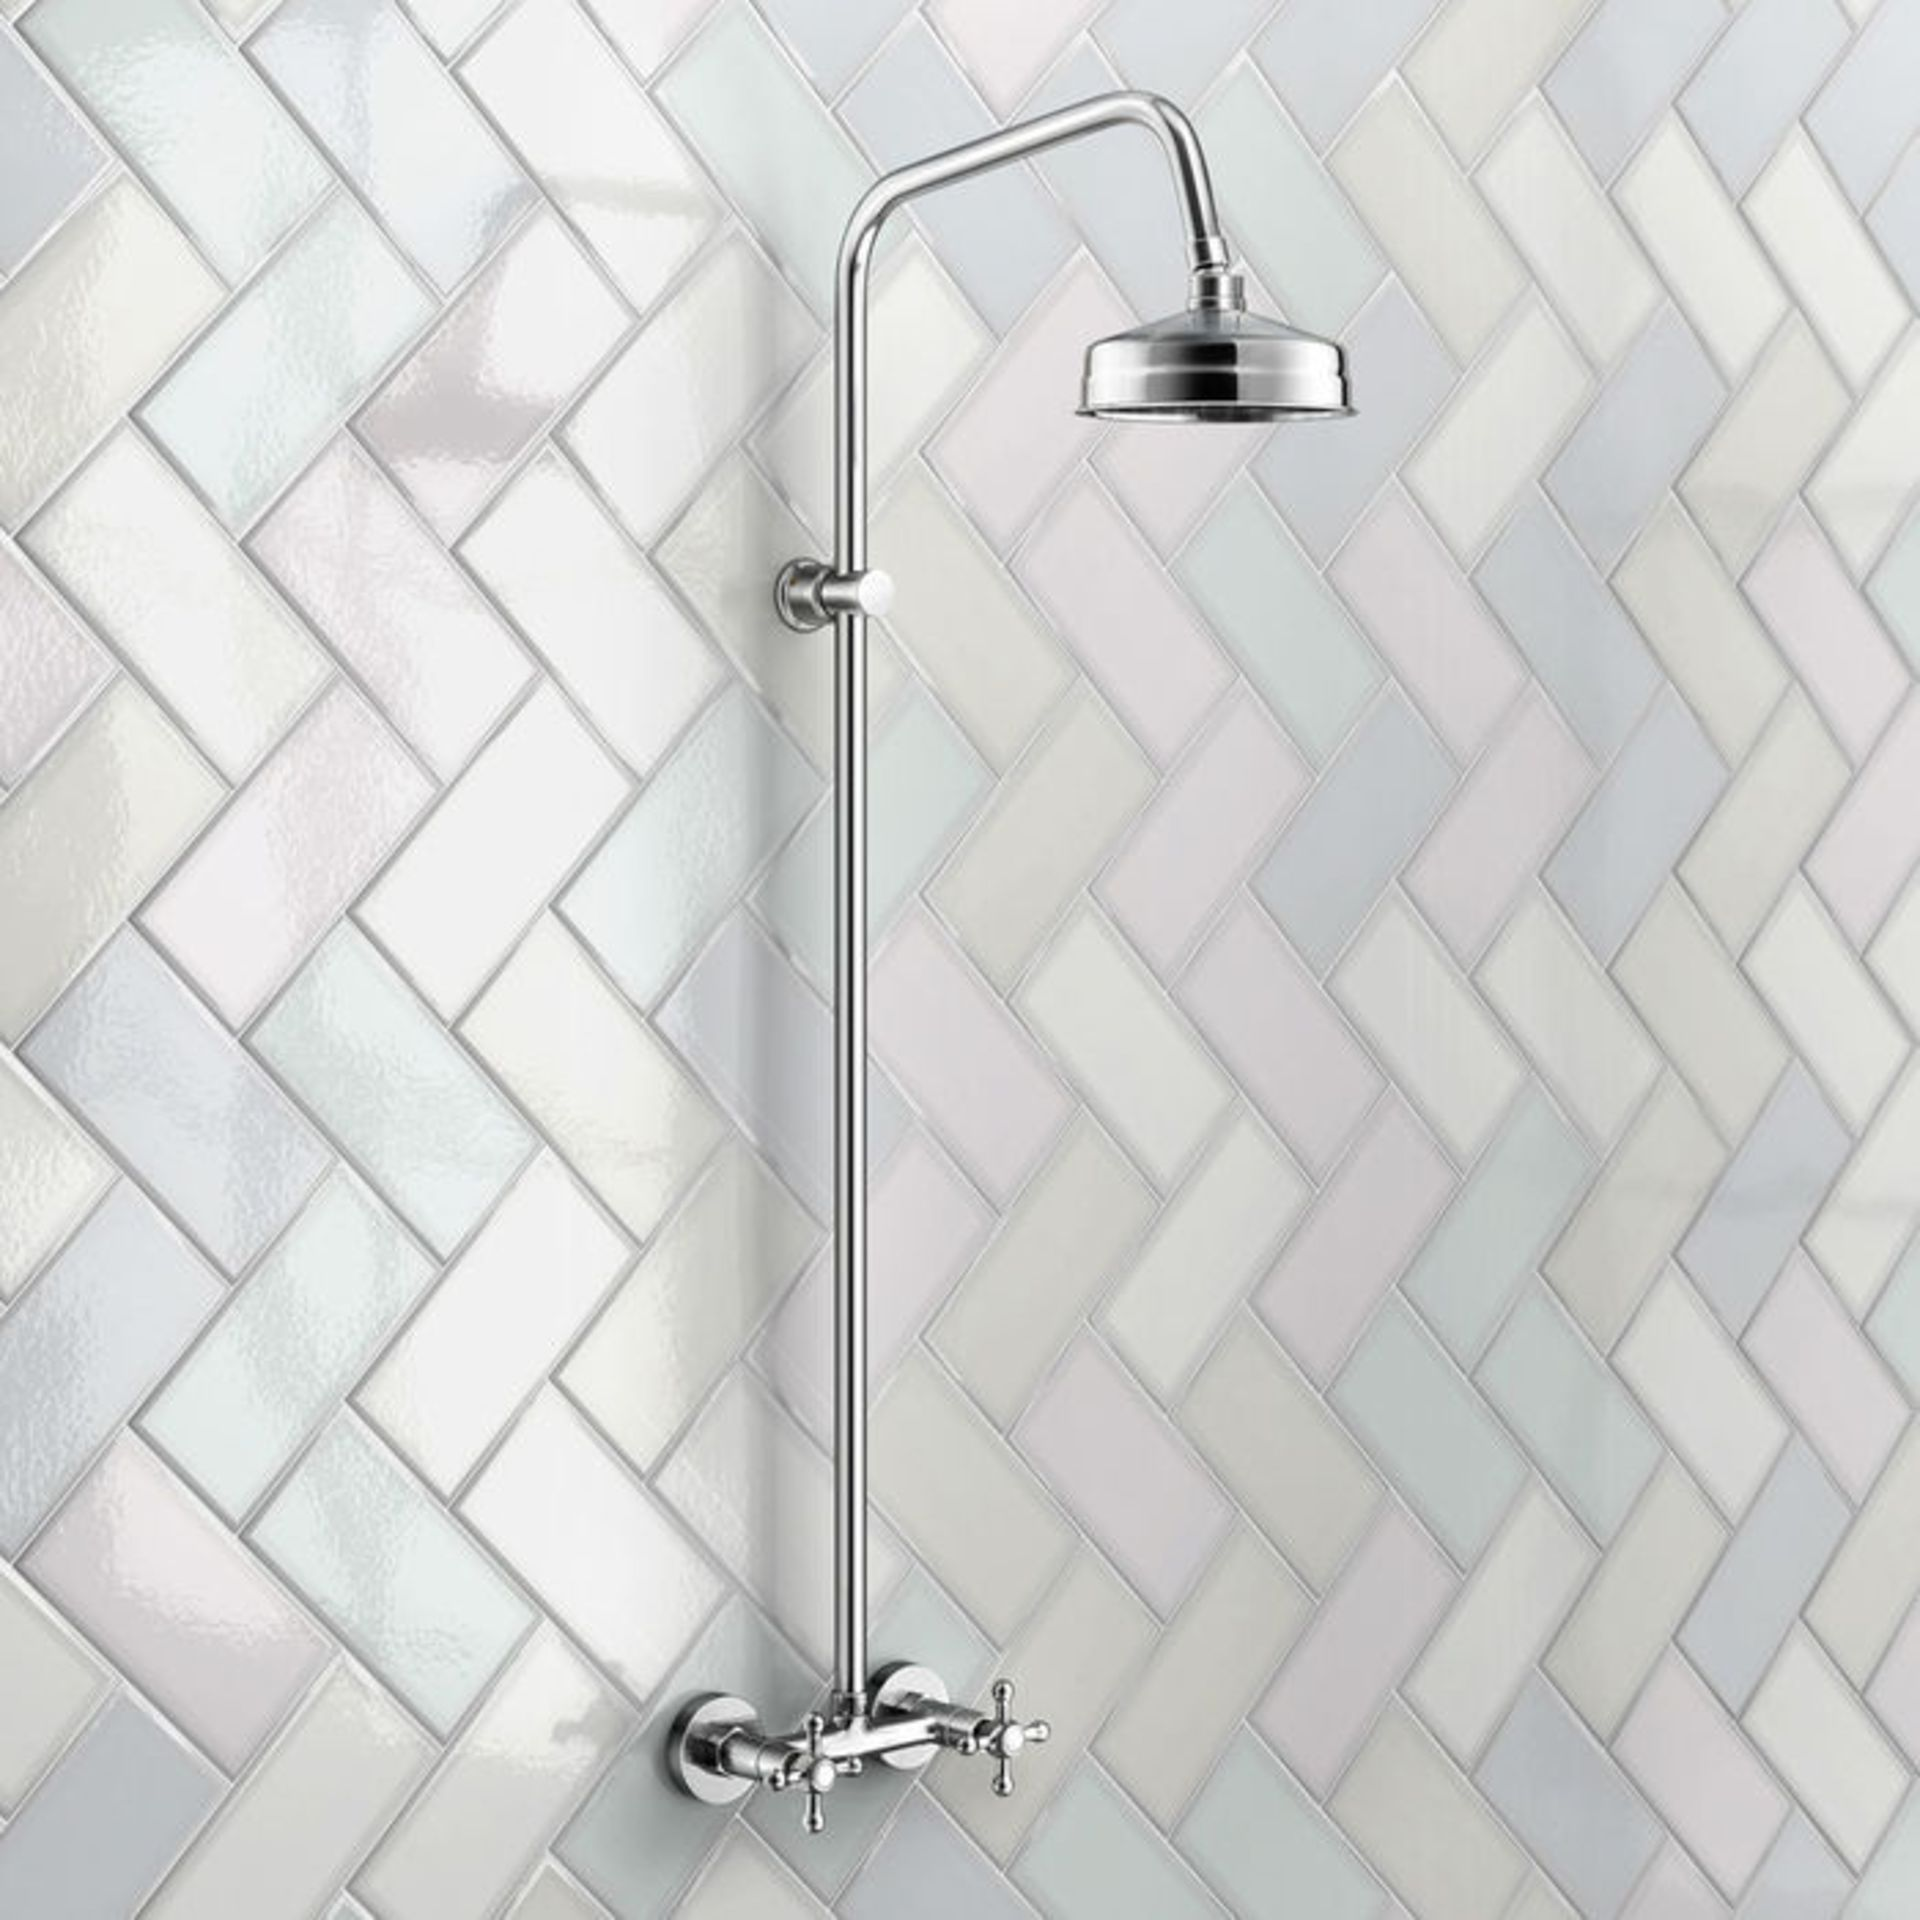 Lot 20 - (P90) Traditional Exposed Shower Medium Head Exposed design makes for a statement piece Stunning